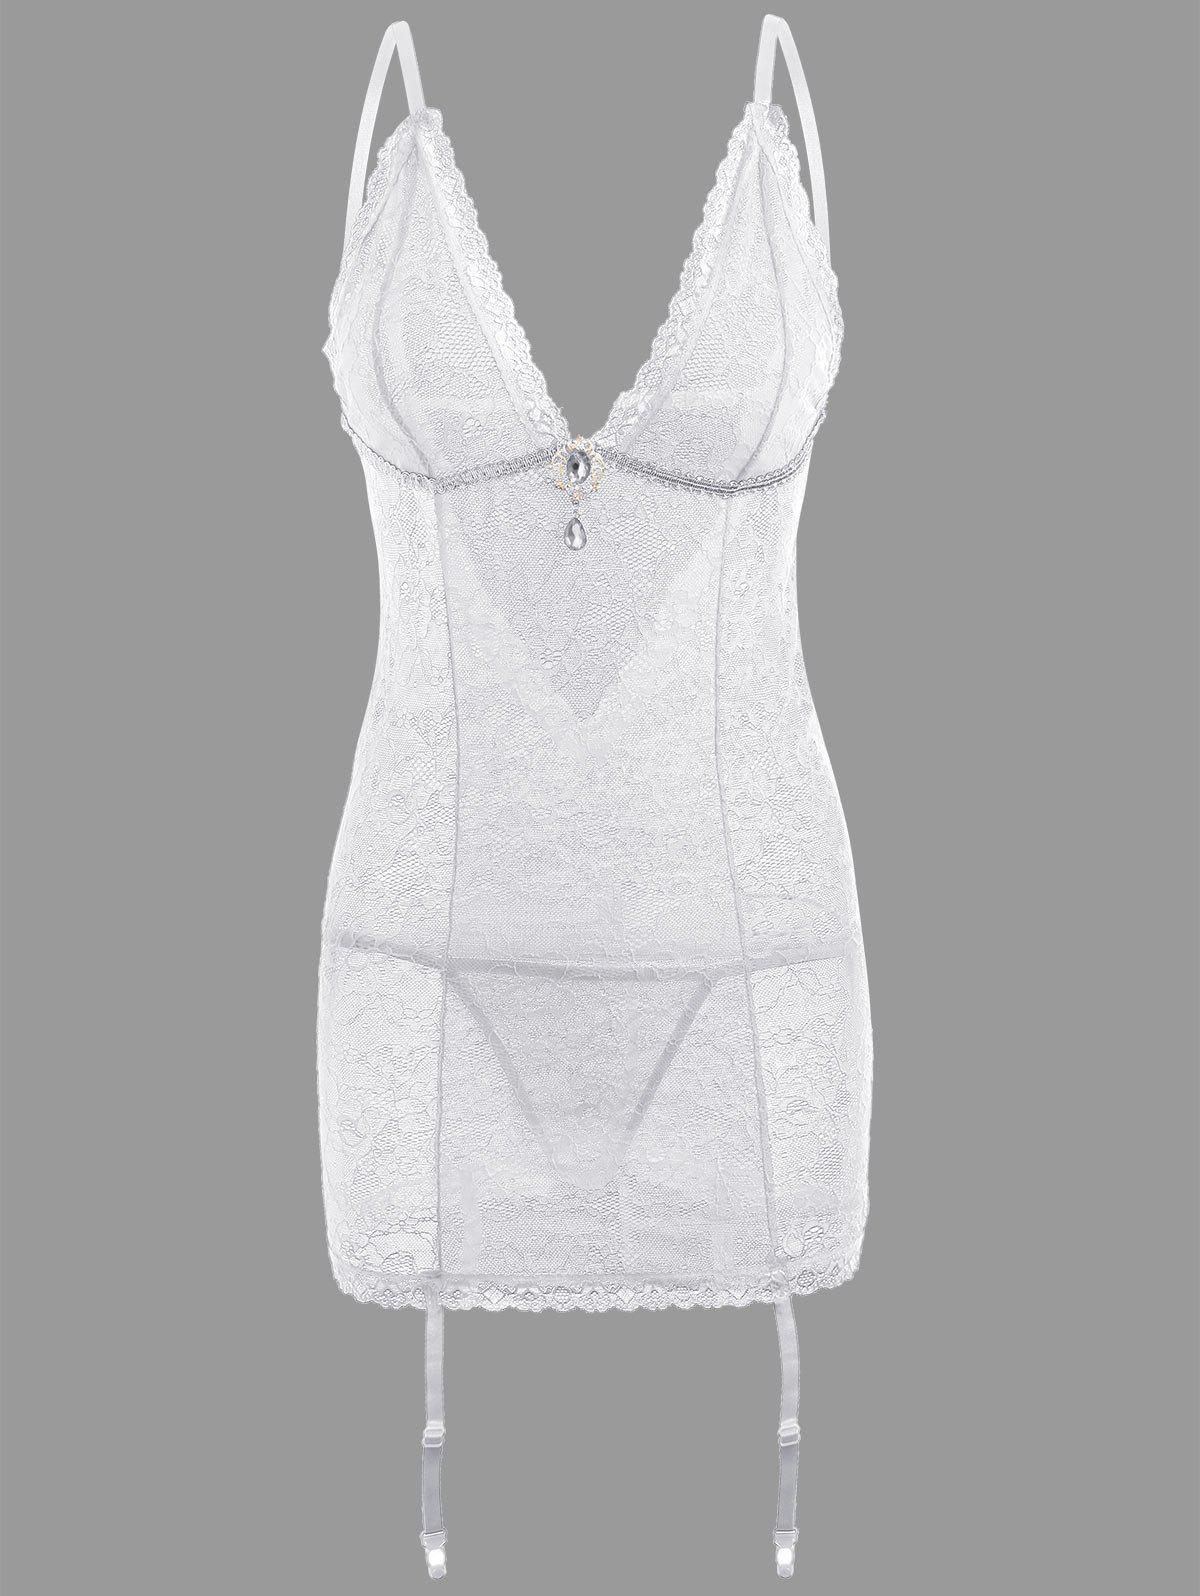 Online Lace Sheer Slip Babydoll with Garters